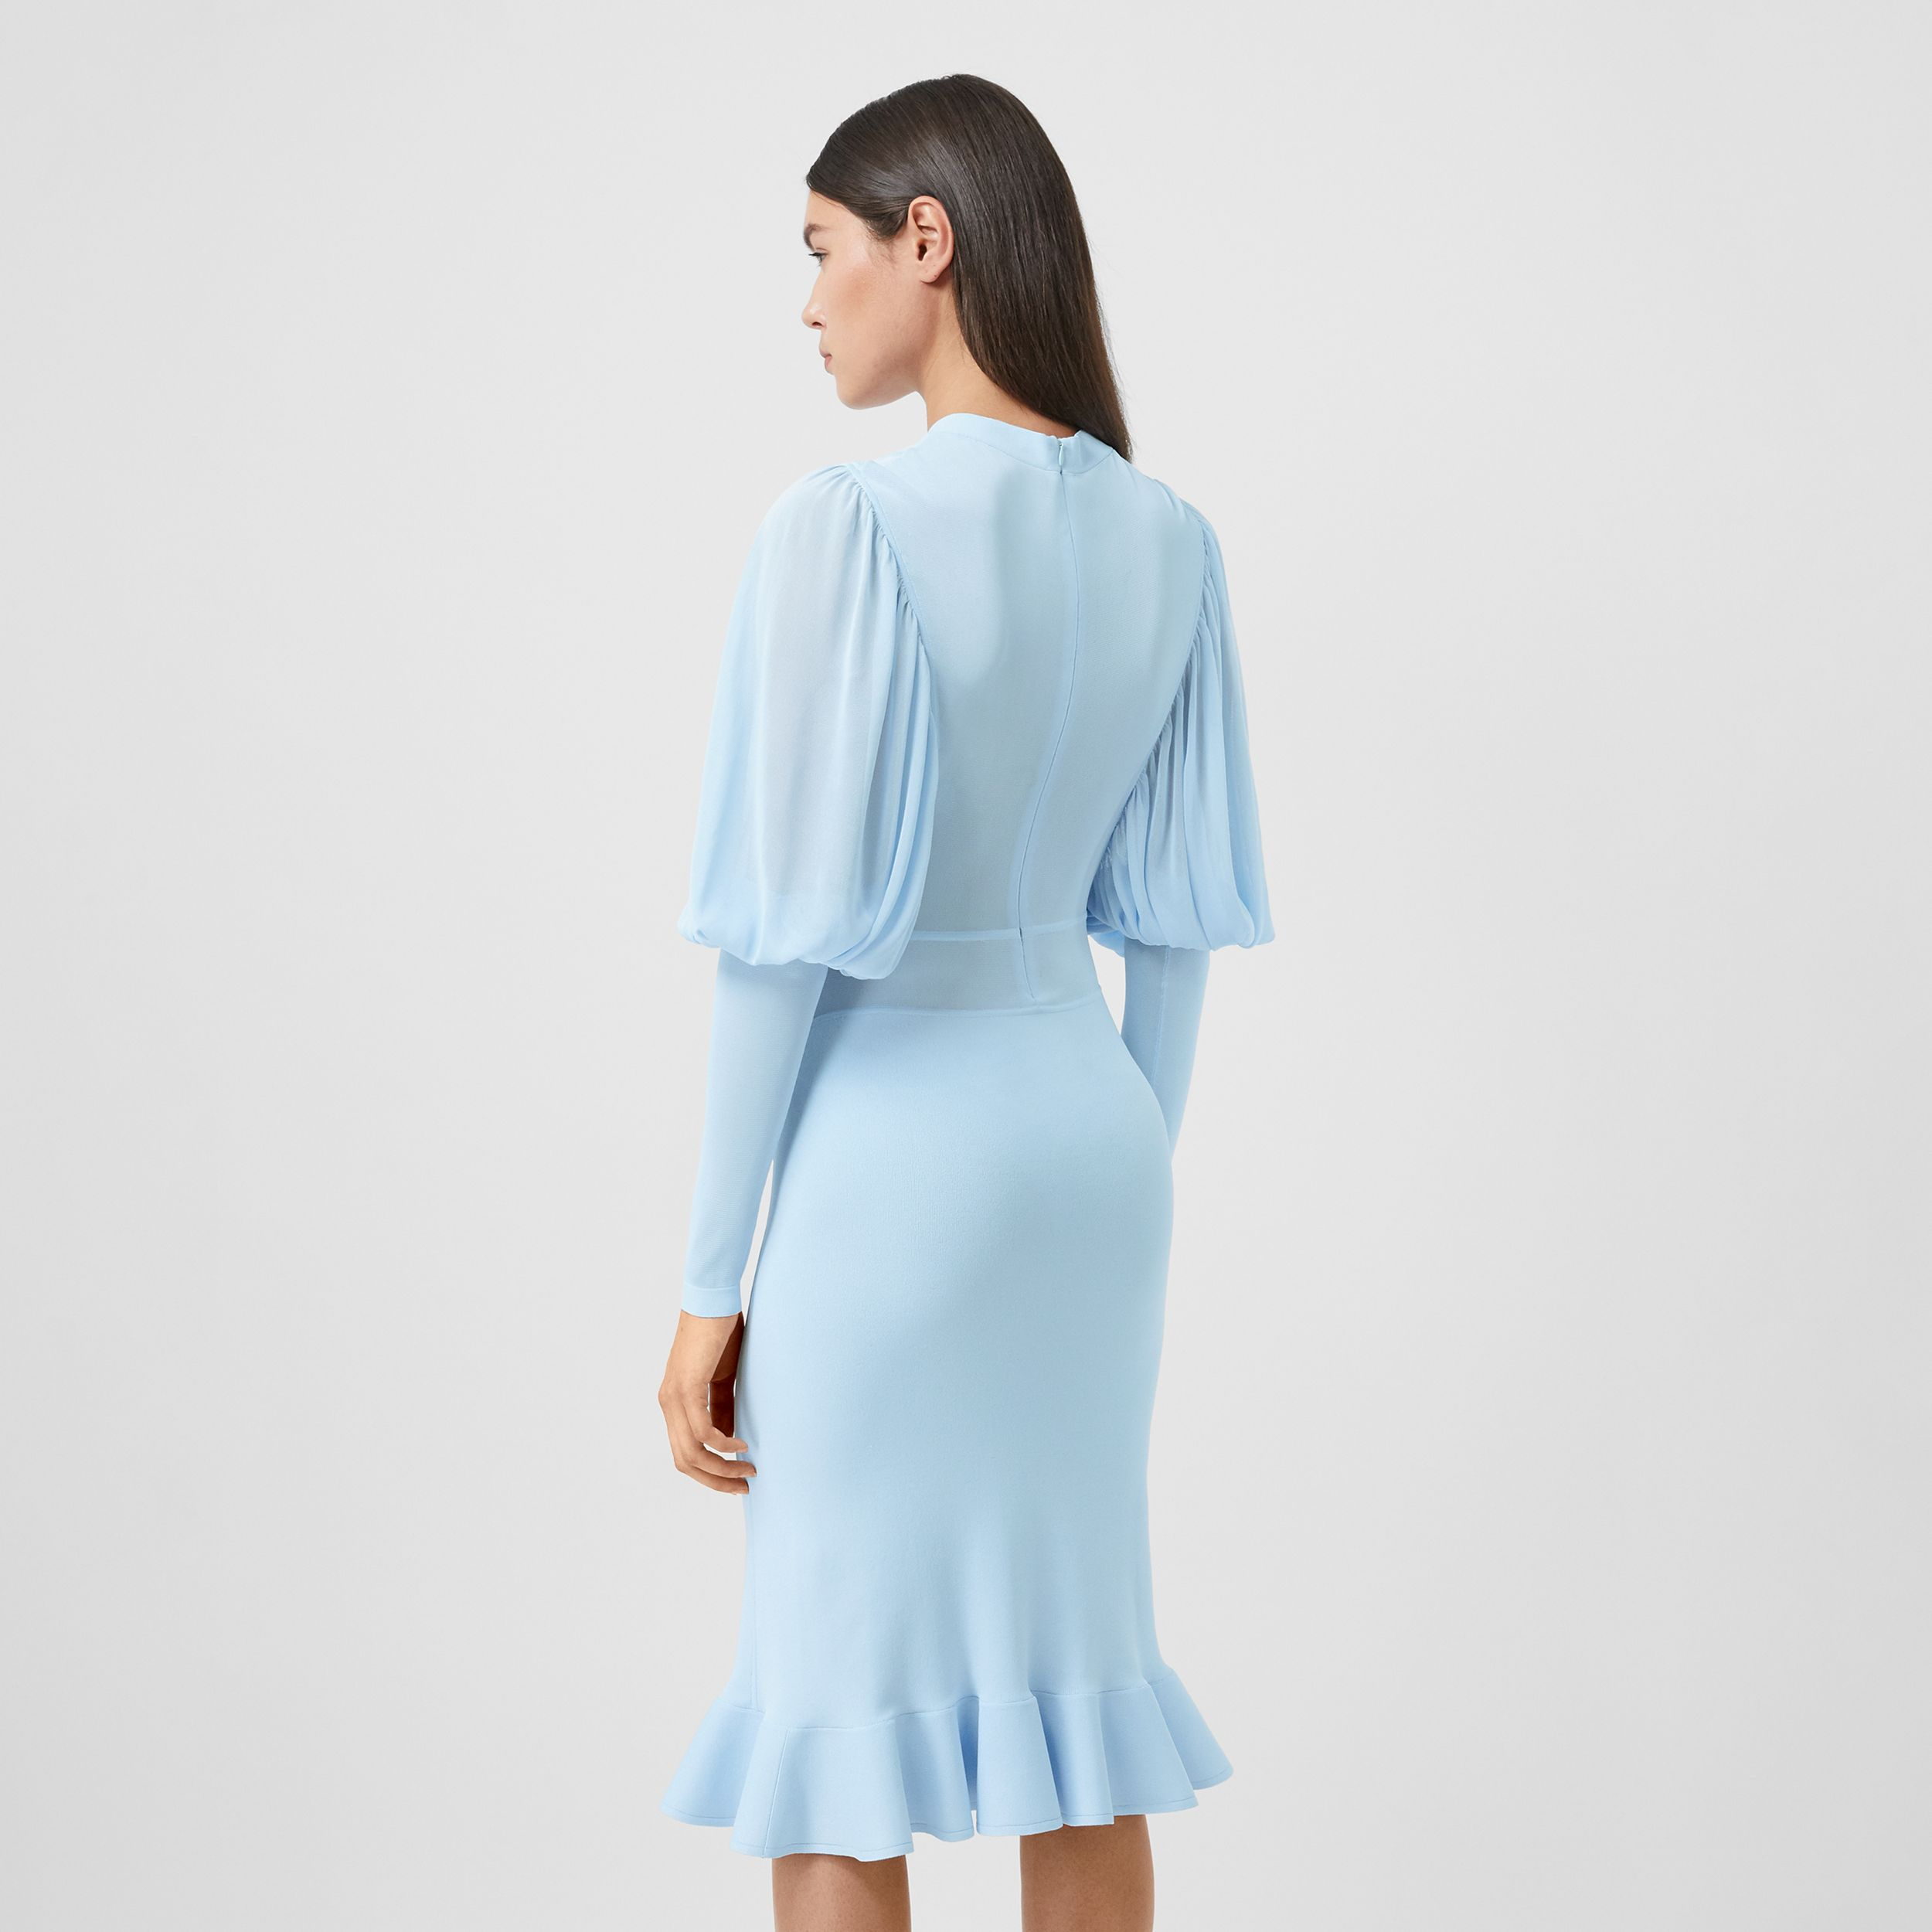 Puff-sleeve Jersey Dress in Pale Blue - Women | Burberry Canada - 3